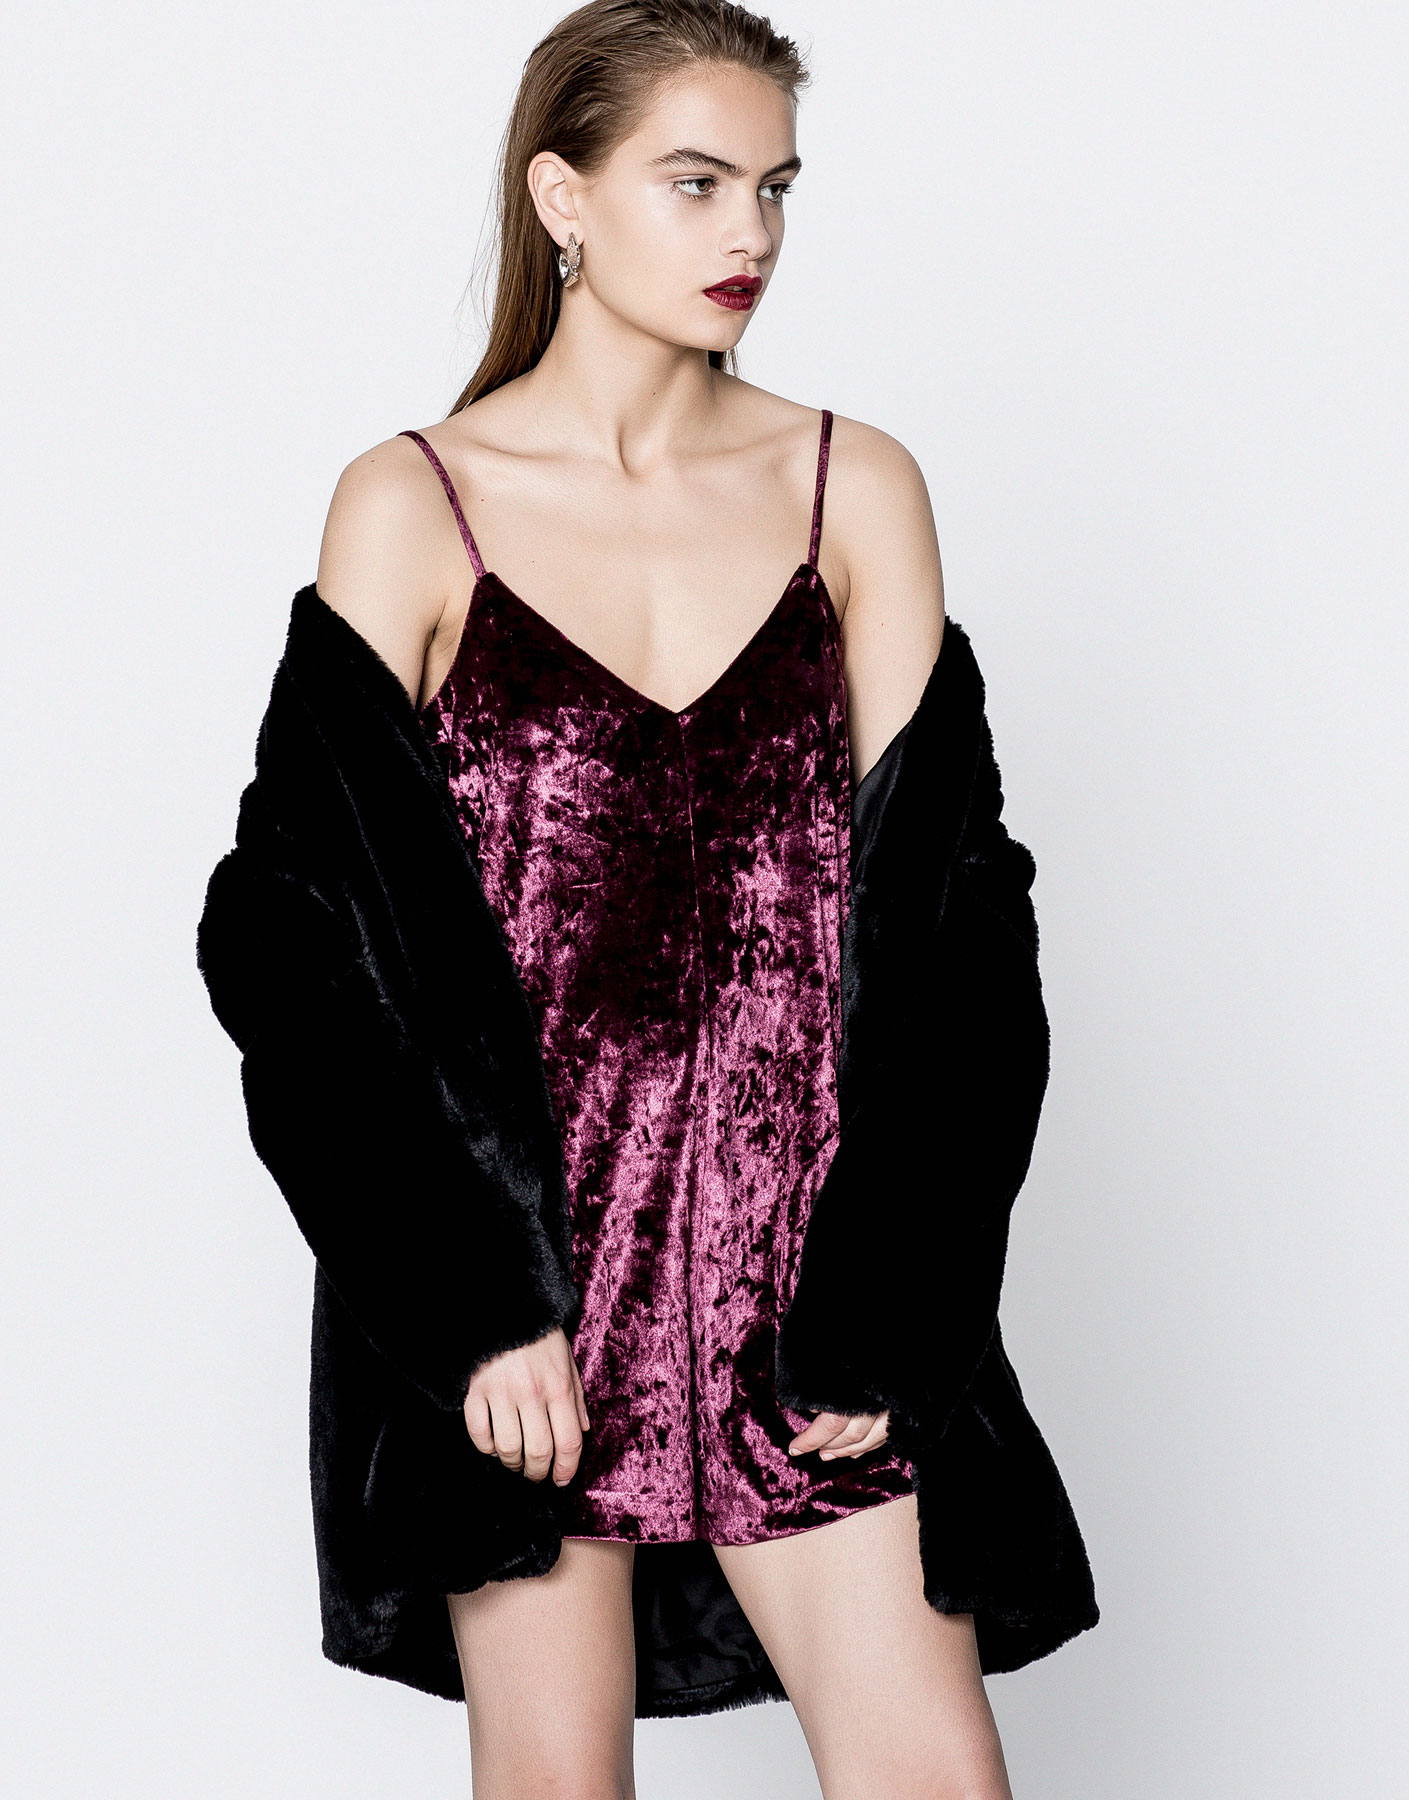 Velvet jumpsuit dress